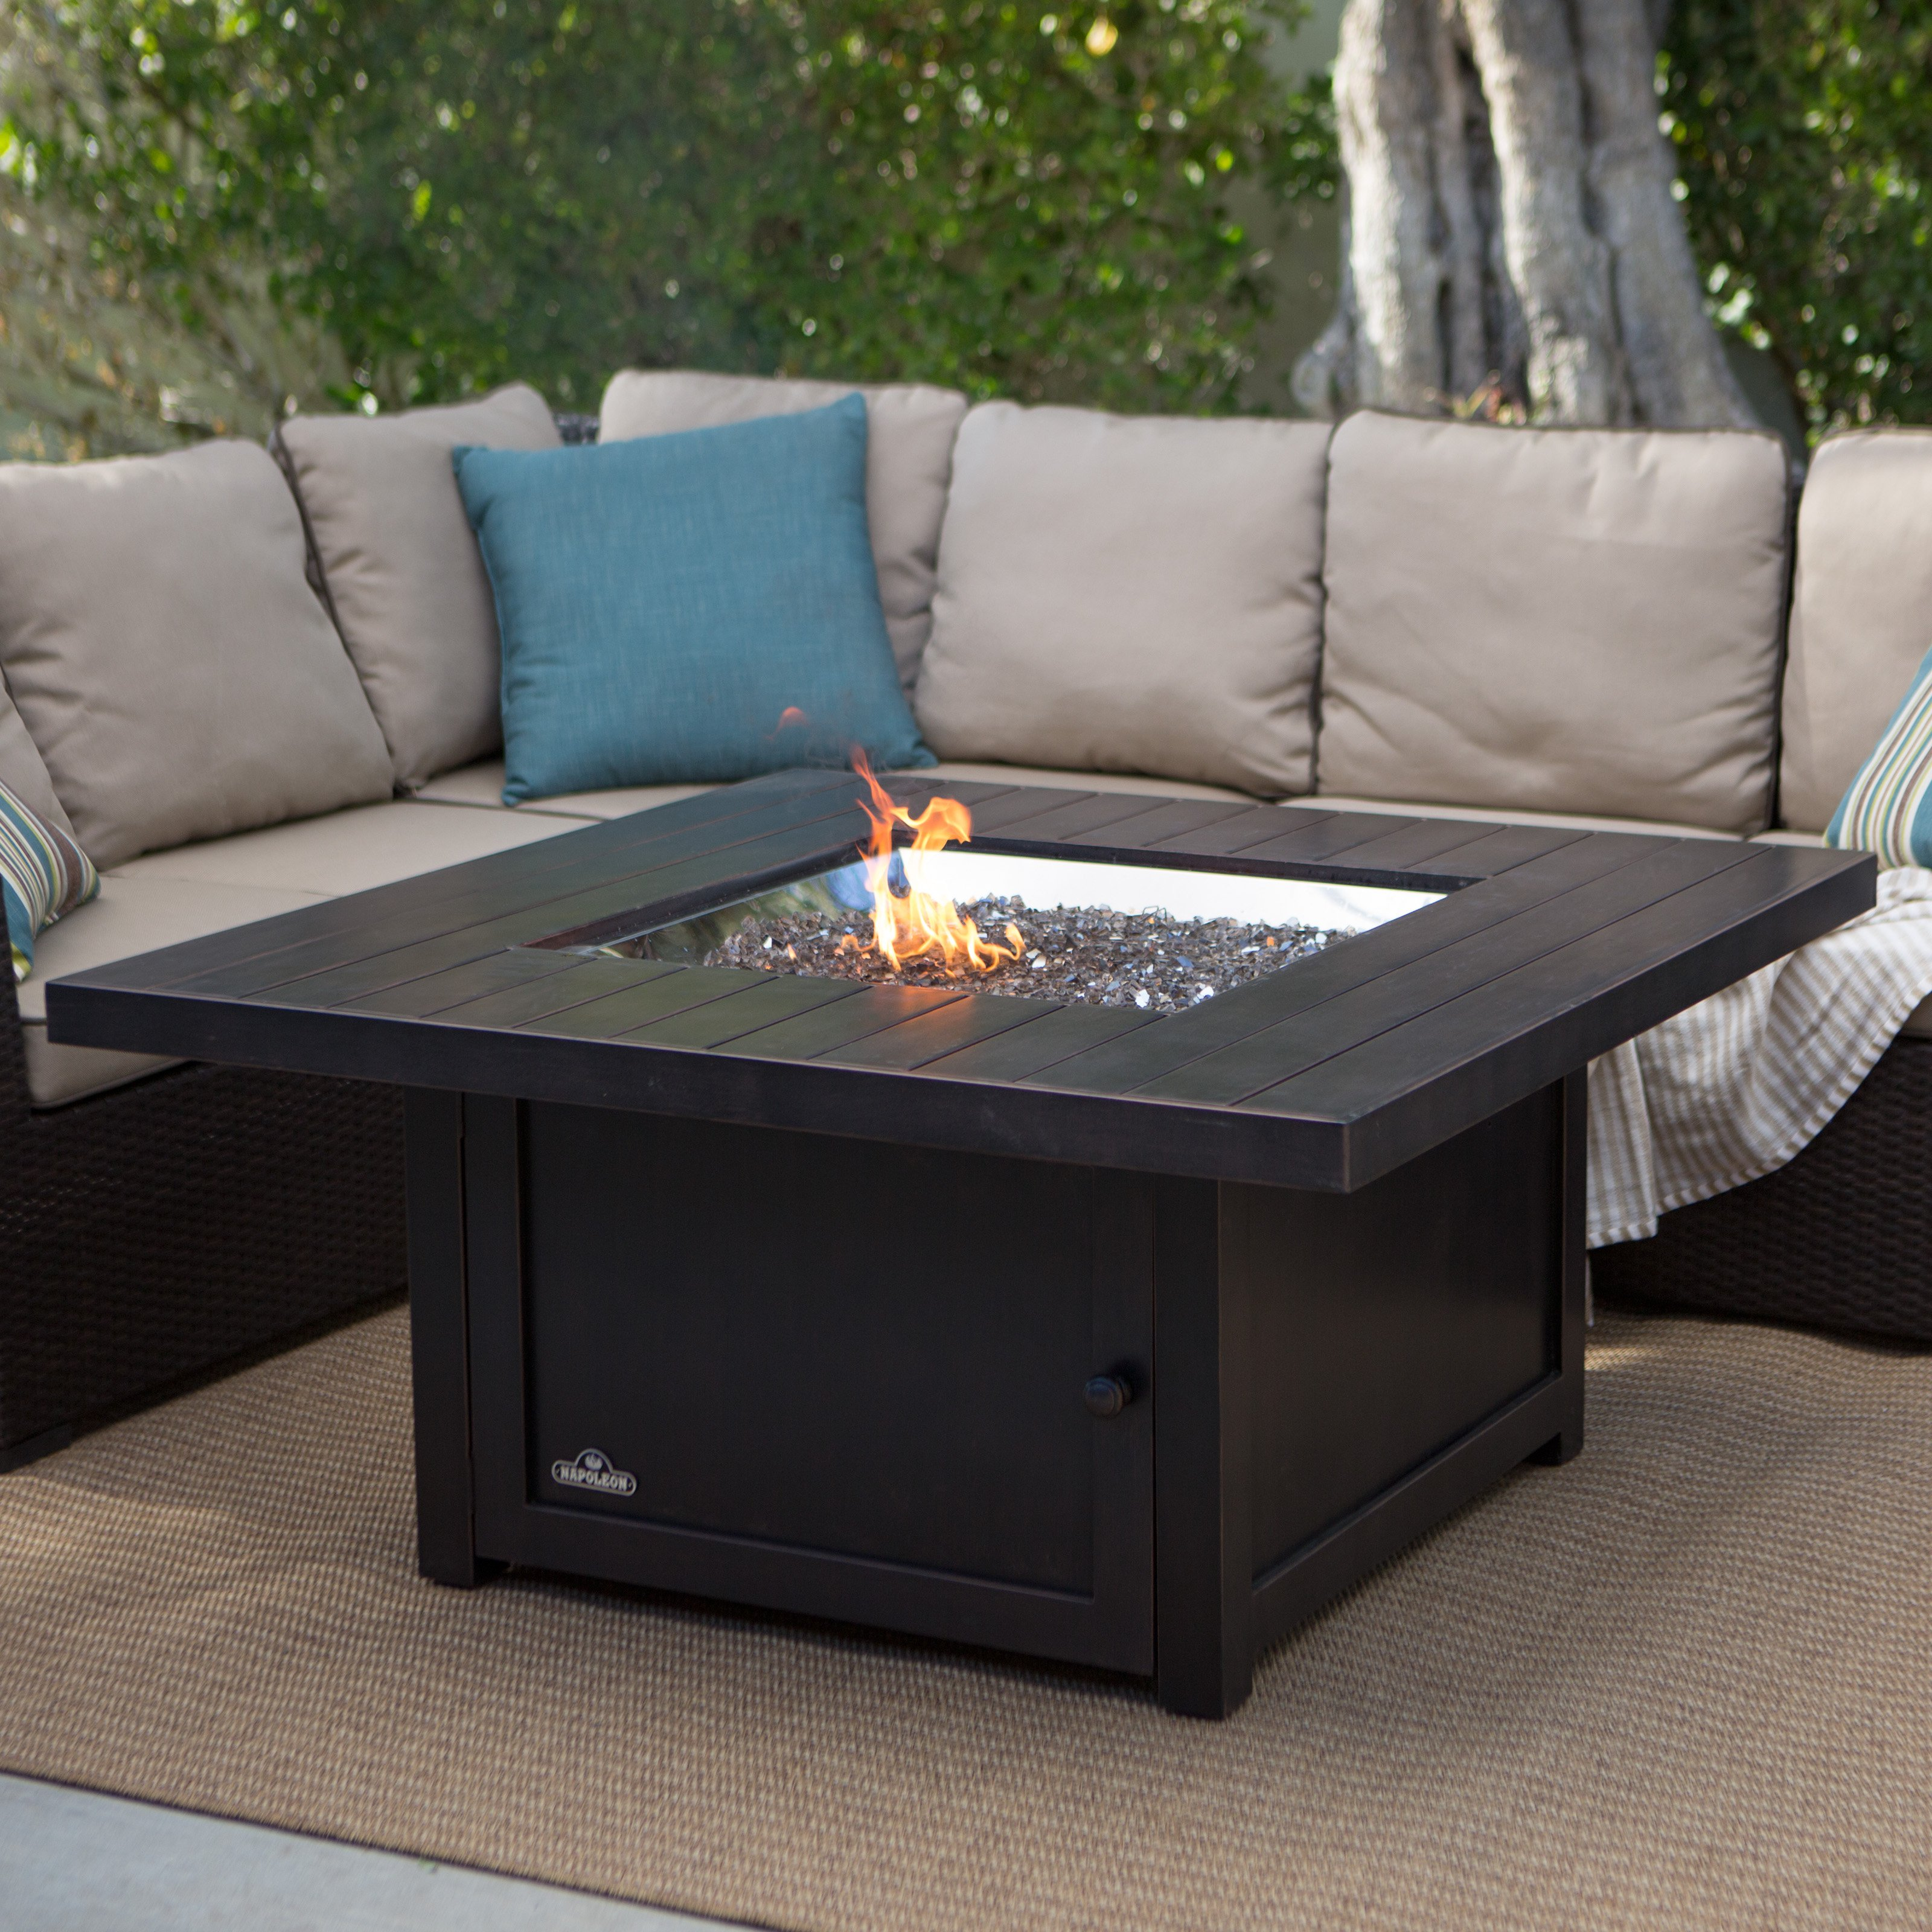 Fire Table Kit Ideas for Outdoor Patio